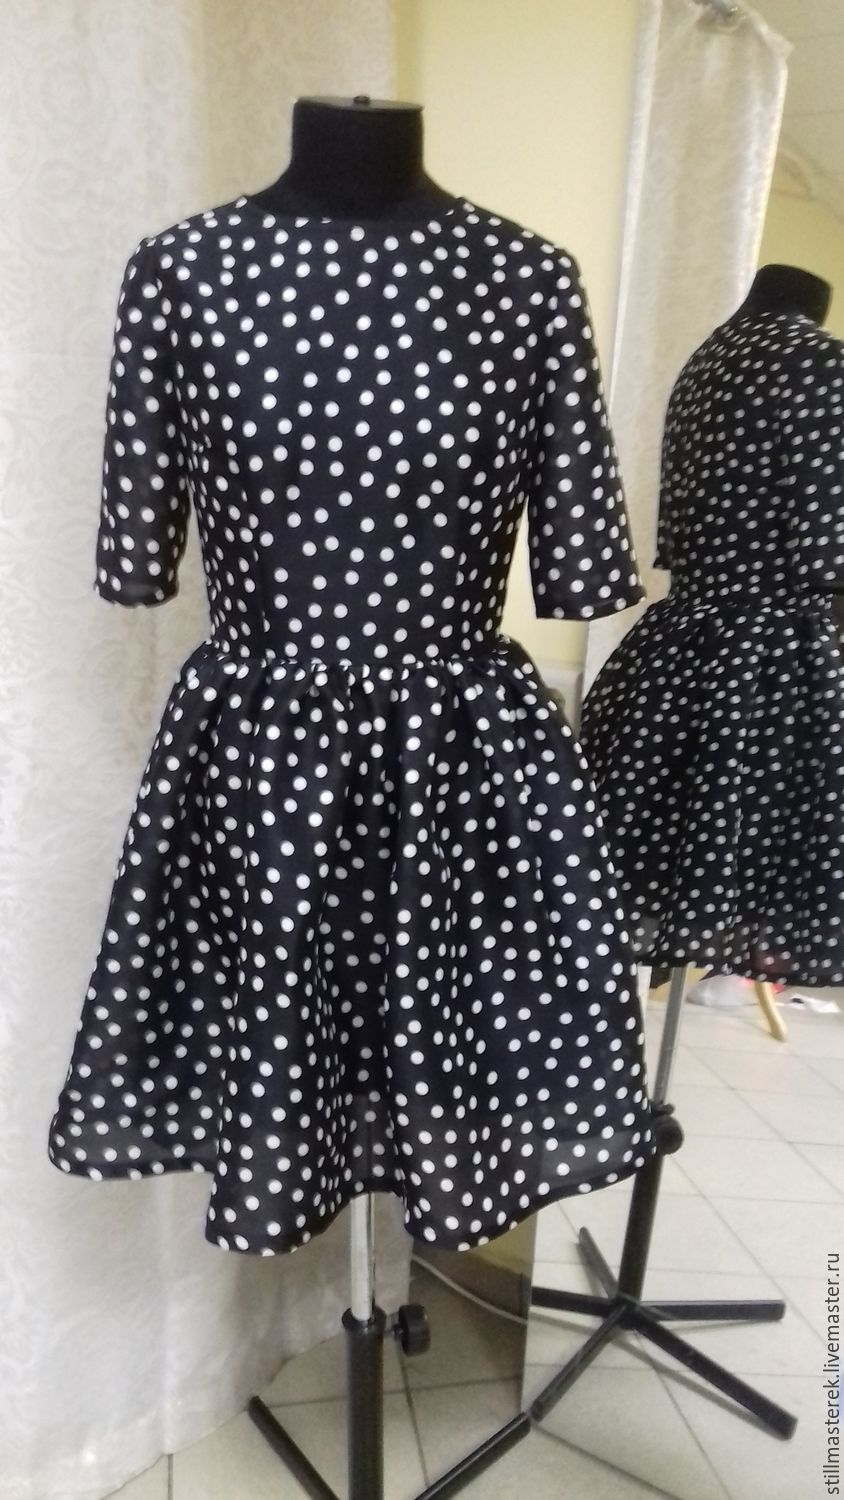 polka dot dress, Dresses, Moscow,  Фото №1